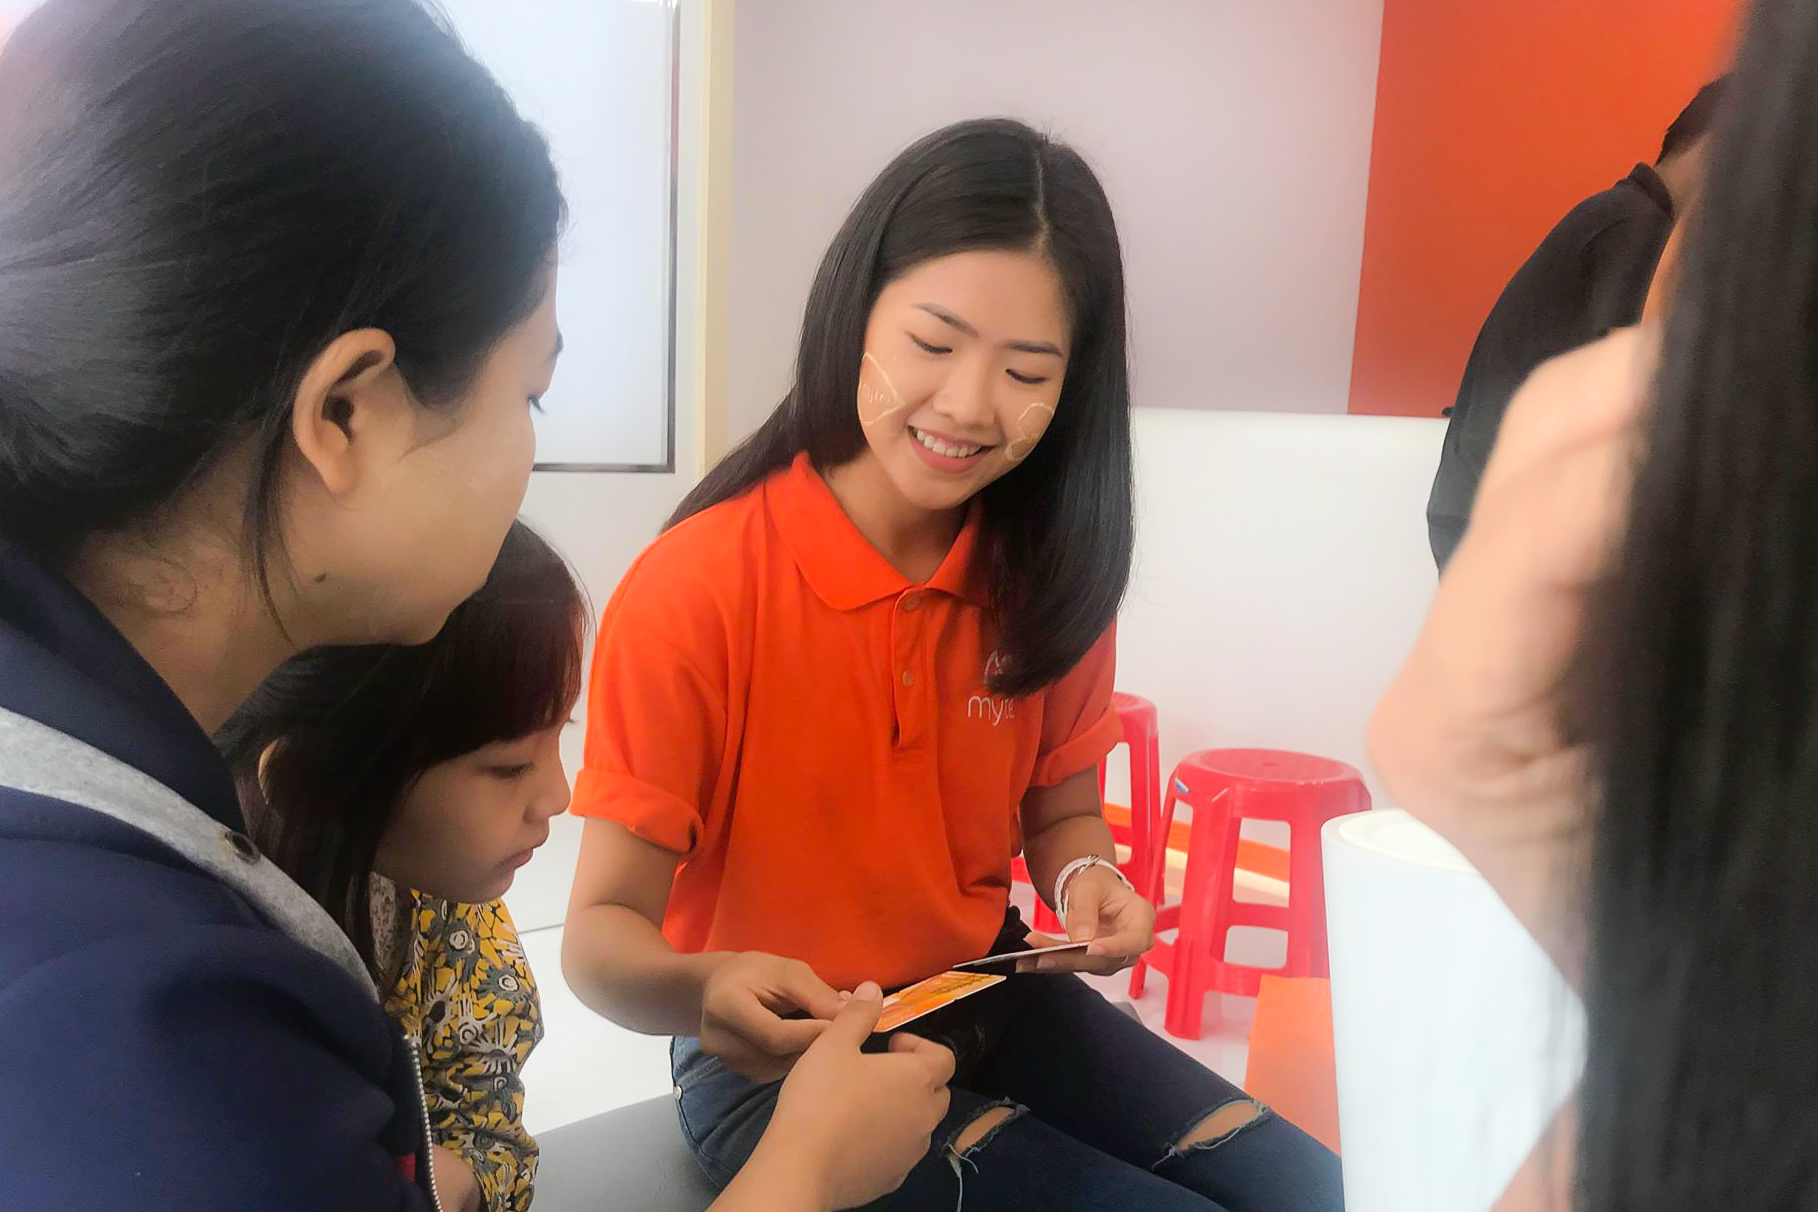 ​Vietnam's Viettel to offer 'zero' roaming fee for Indochinese users after launch of Mytel in Myanmar